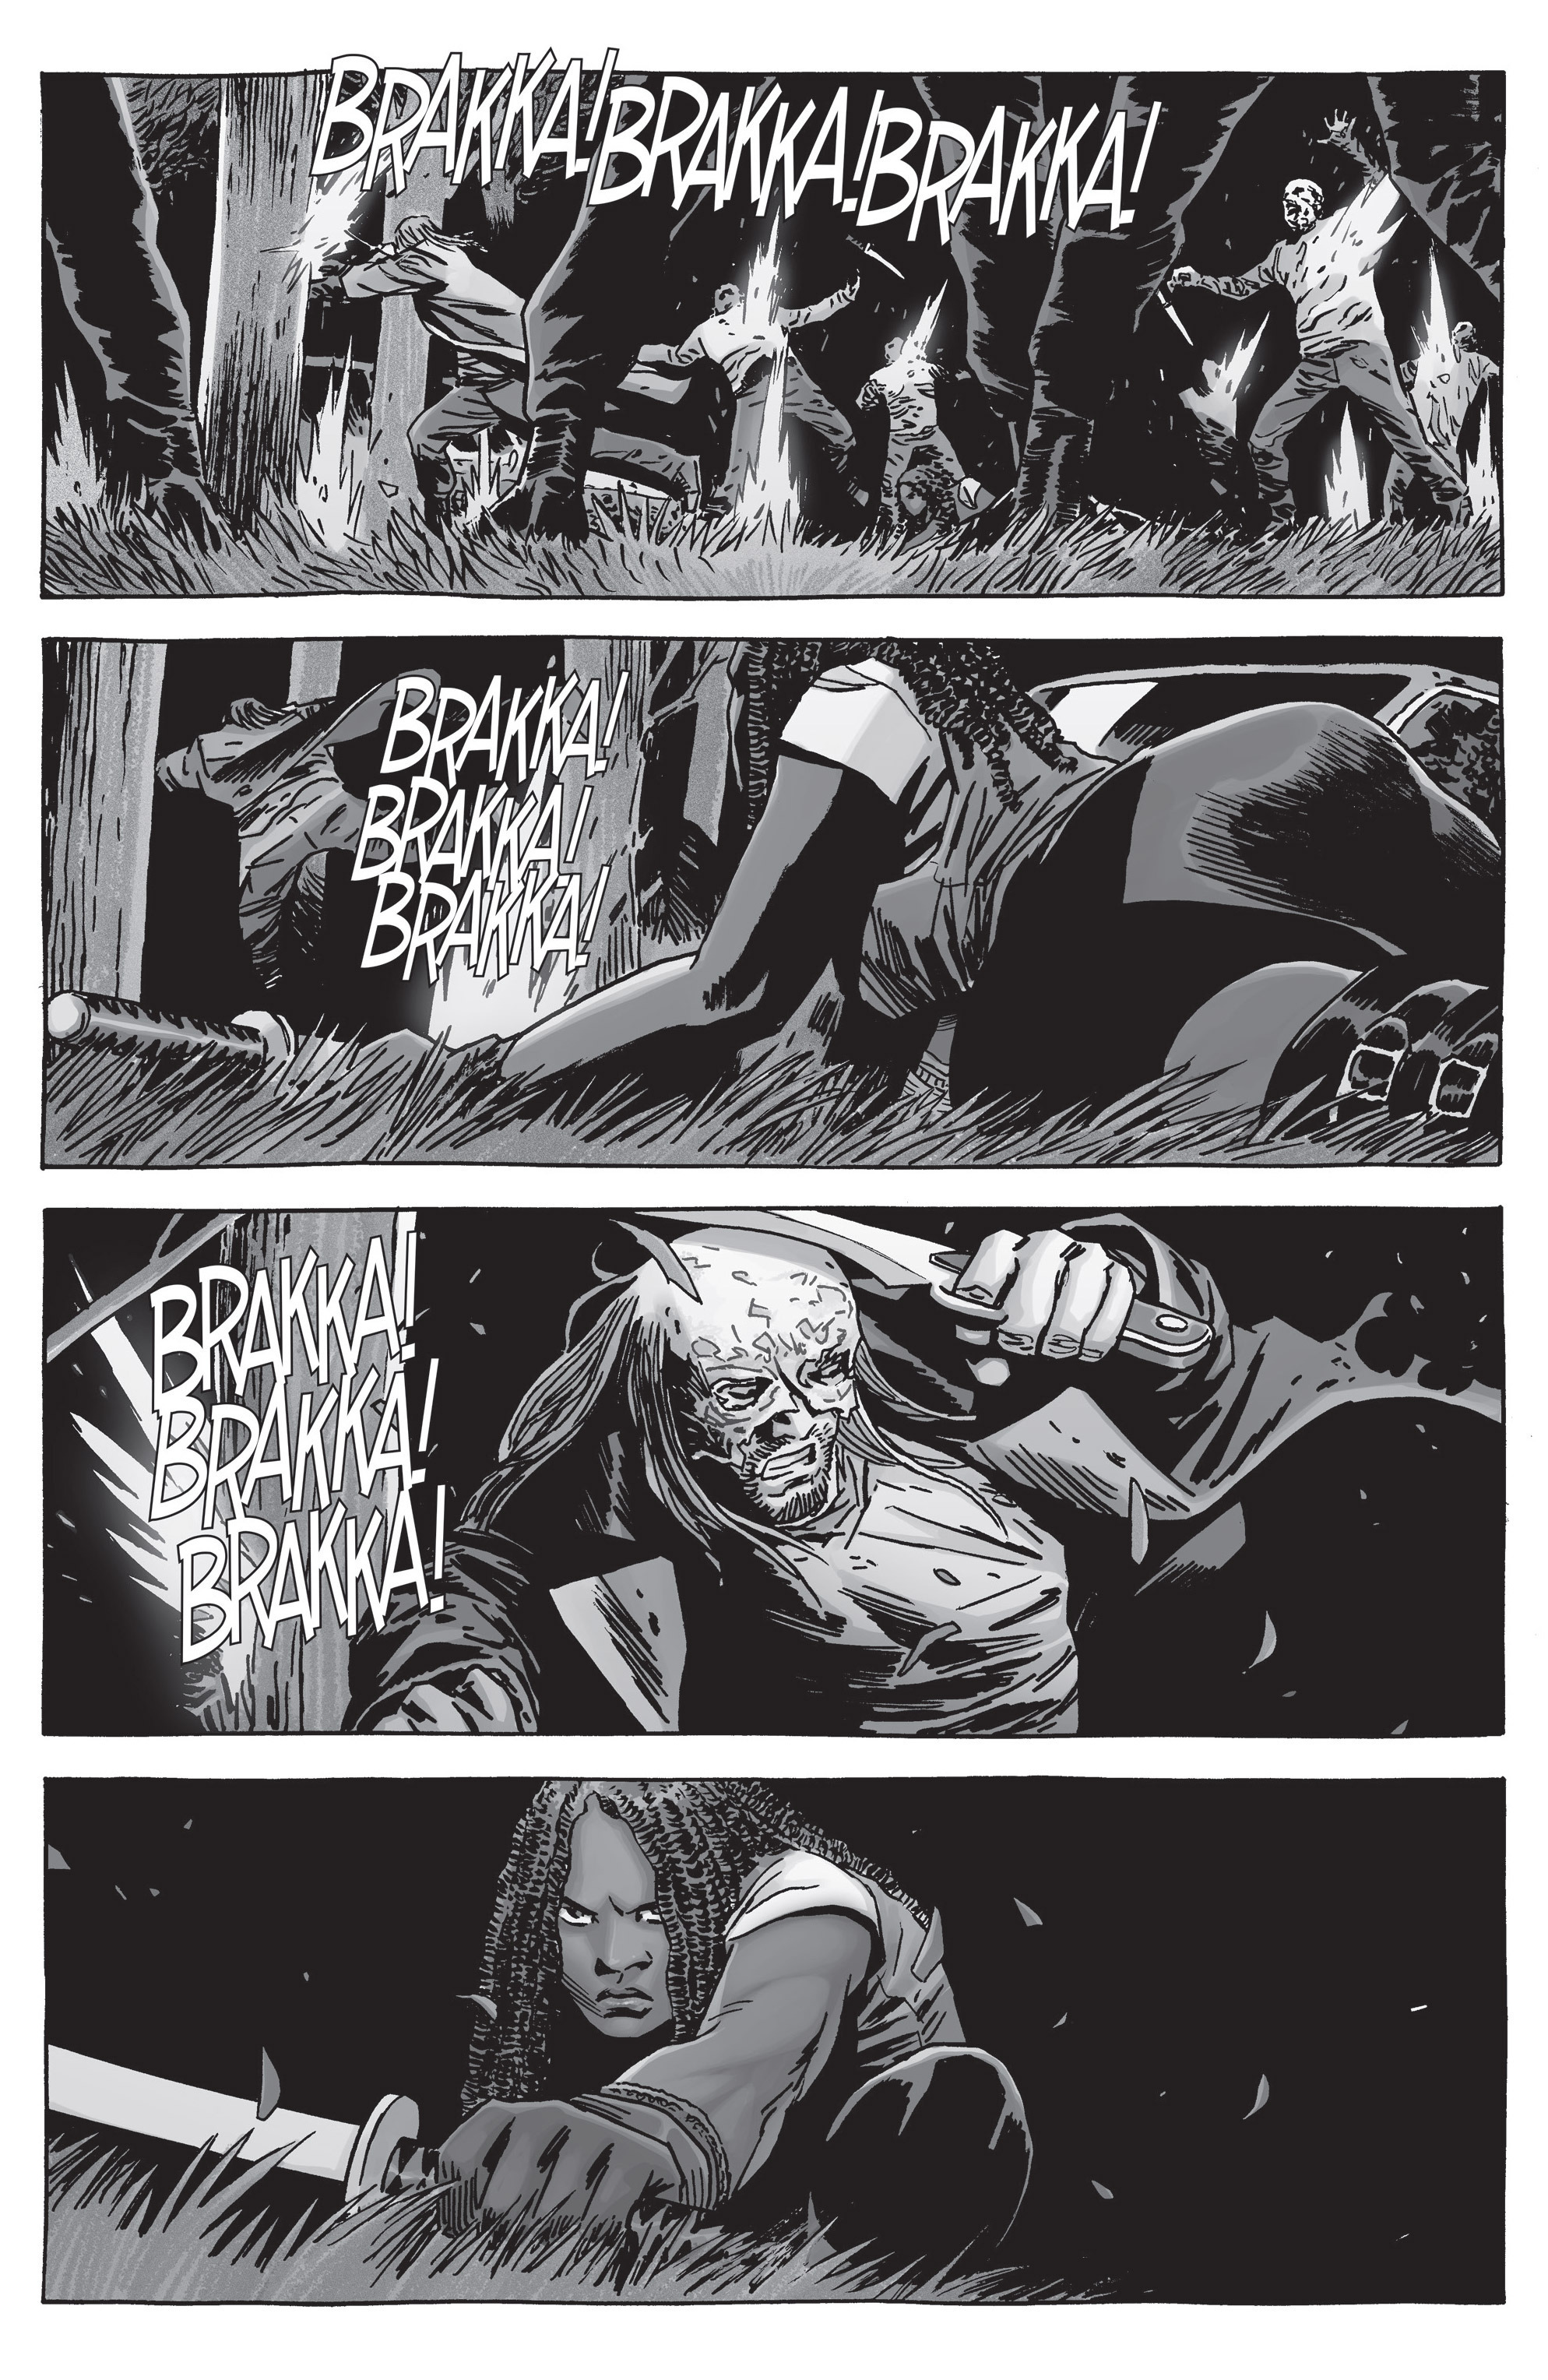 Michonne VS Beta (The Walking Dead)